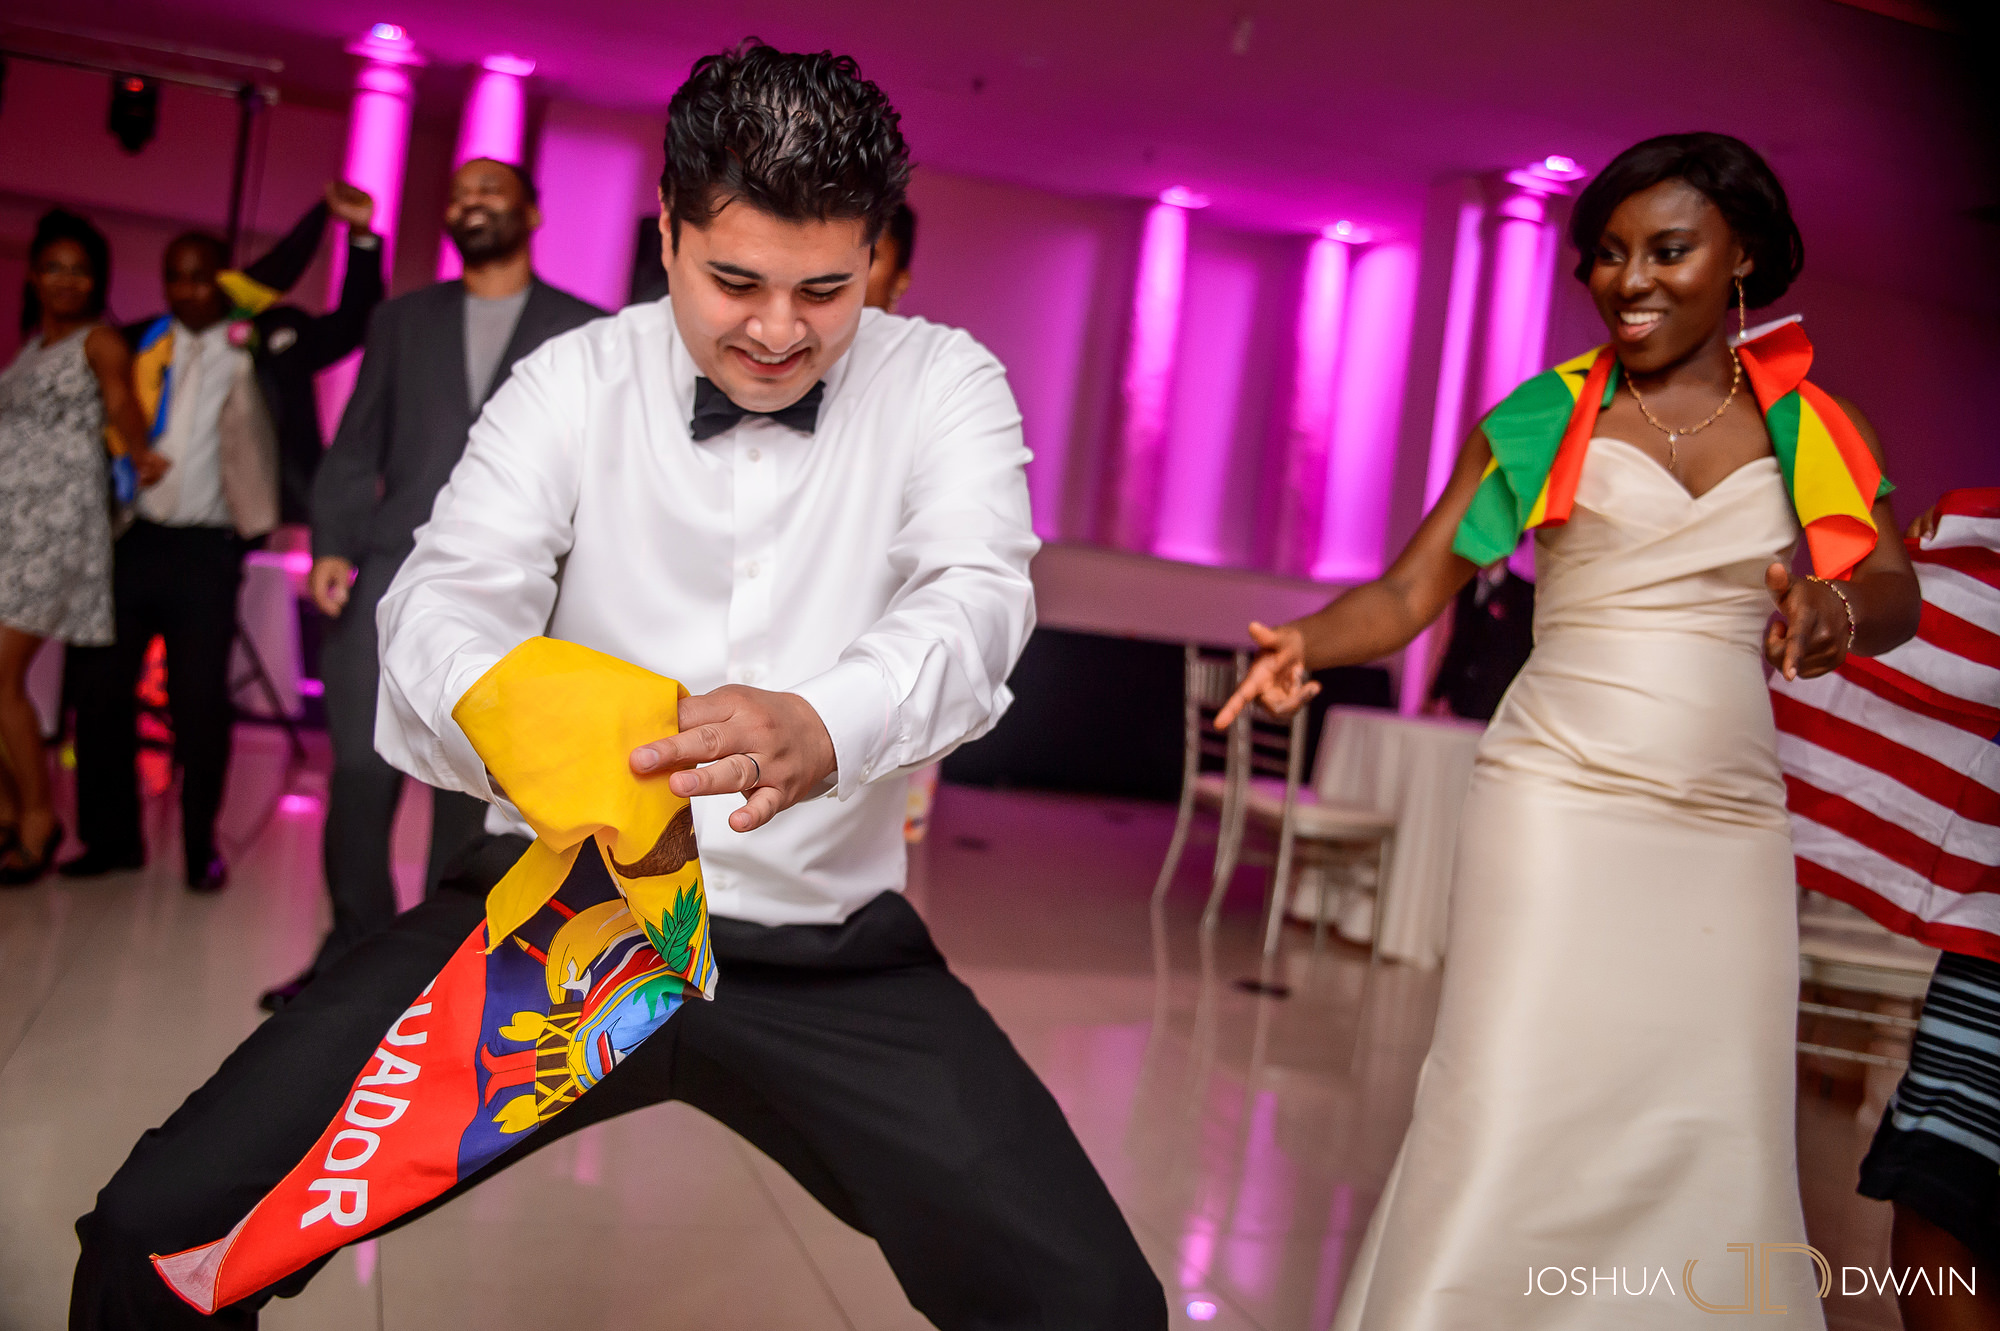 Alana & Vibist's Wedding at Greentree Country Club in New Rochelle, NY